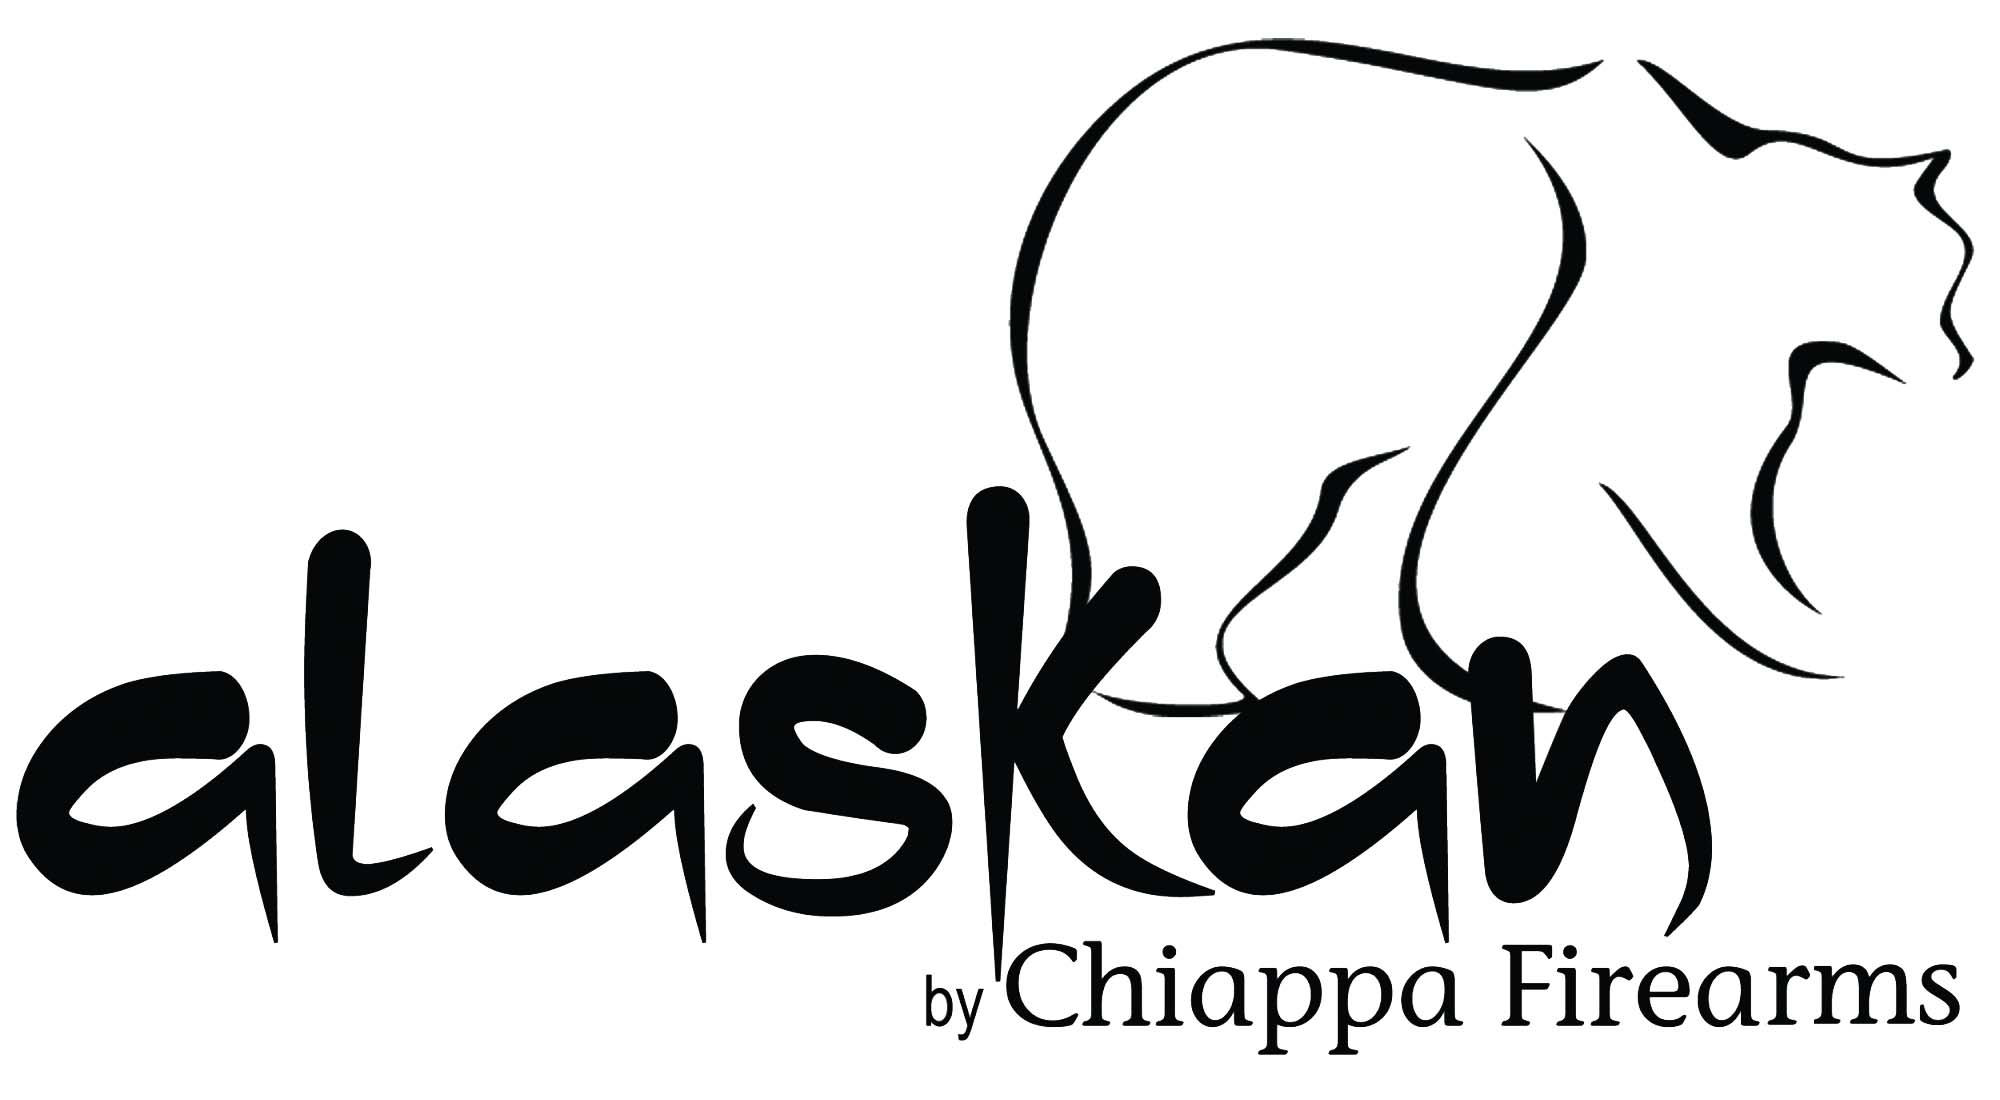 The Logo for the new Chiappa Firearms Alaskan 1892 lever action rifle